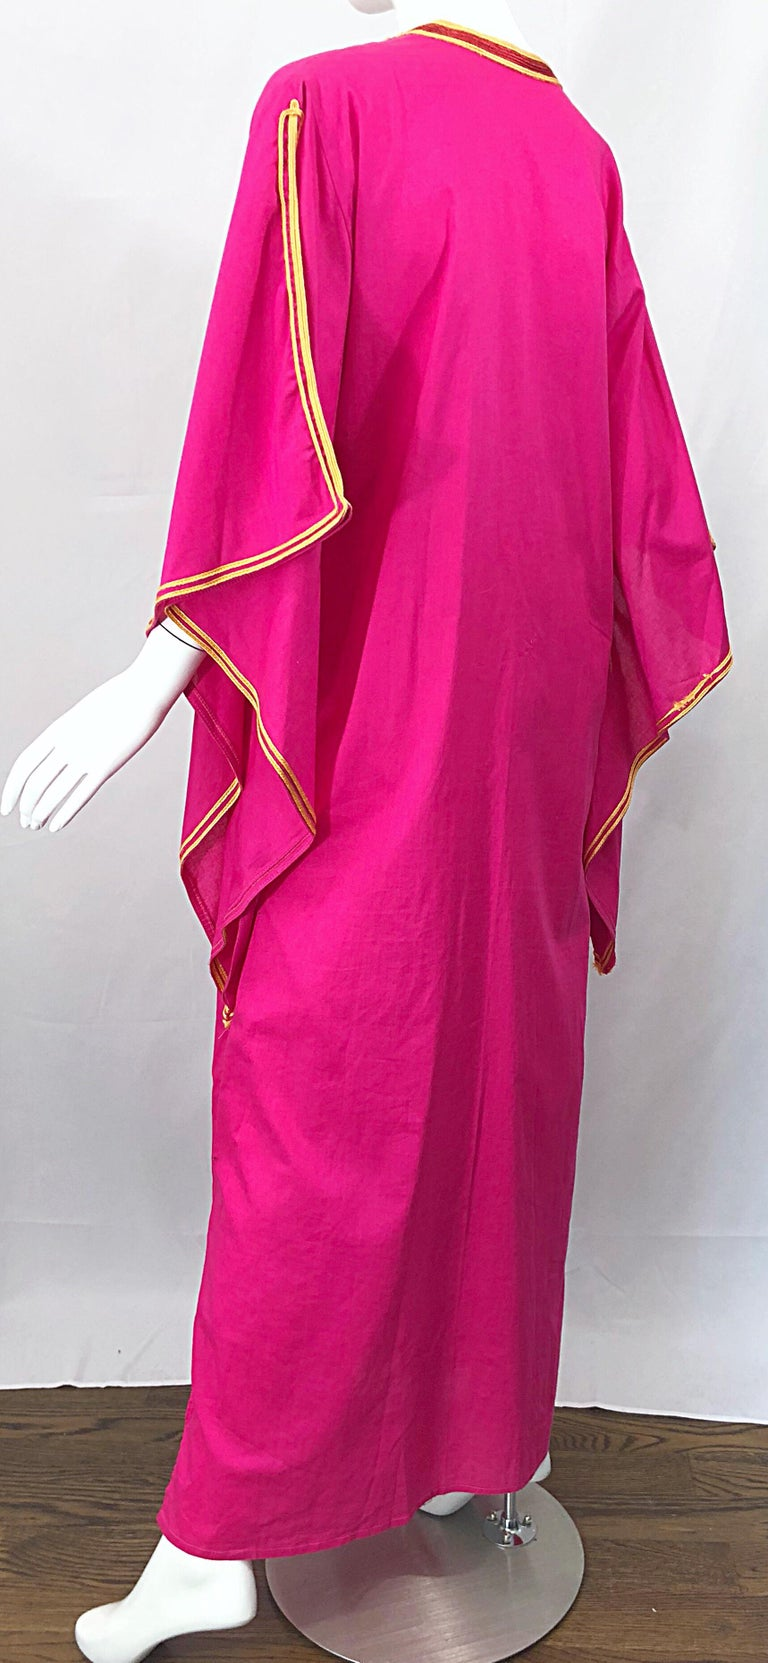 Amazing 1970s Hot Pink + Yellow Angel Sleeve Vintage 70s Kaftan Maxi Dress For Sale 3